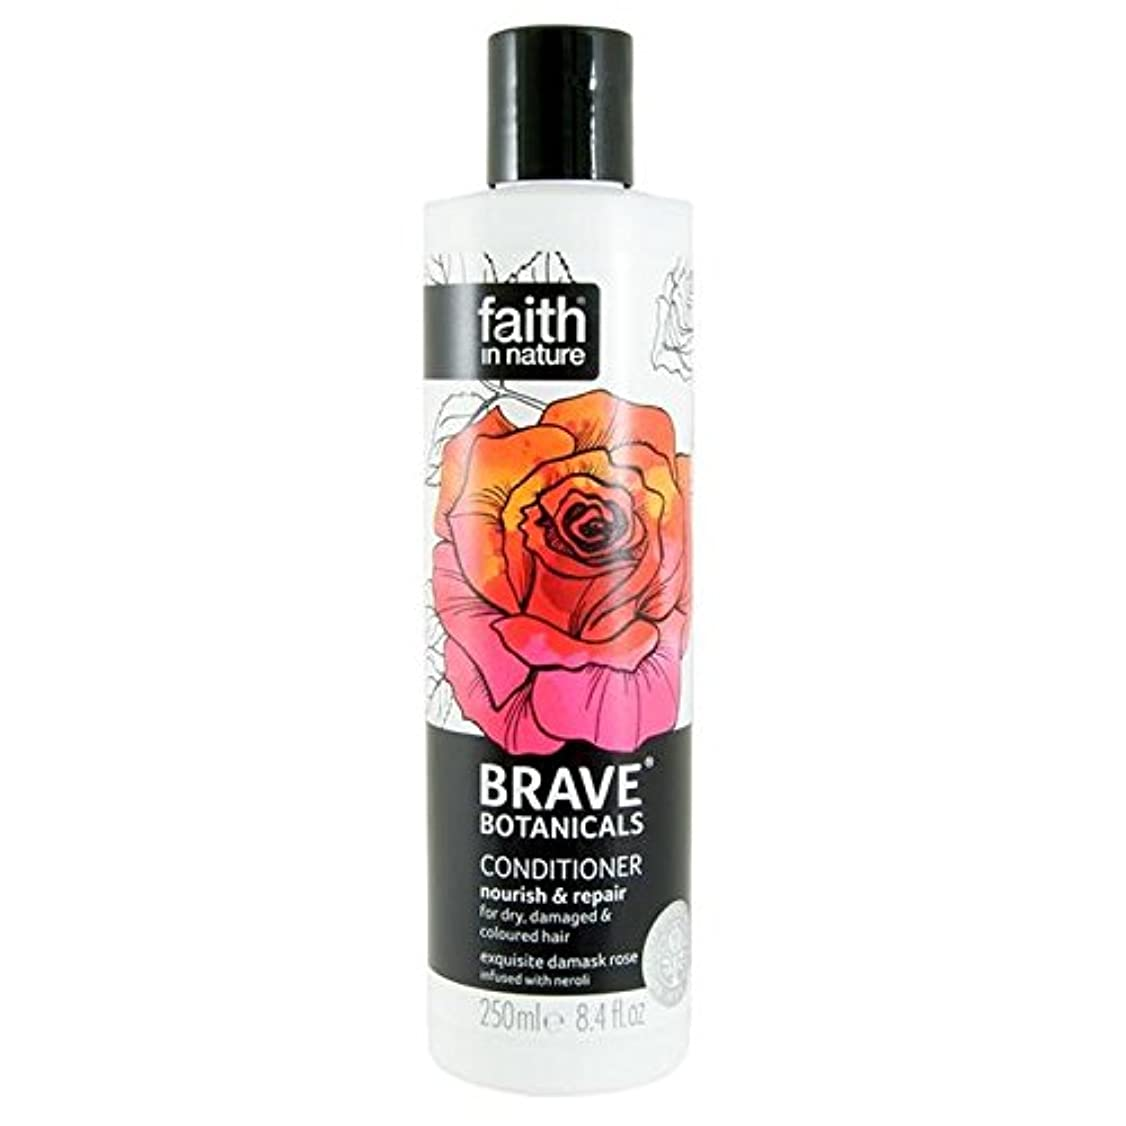 ポット愚かな水素Brave Botanicals Rose & Neroli Nourish & Repair Conditioner 250ml (Pack of 6) - (Faith In Nature) 勇敢な植物は、ローズ&ネロリ...